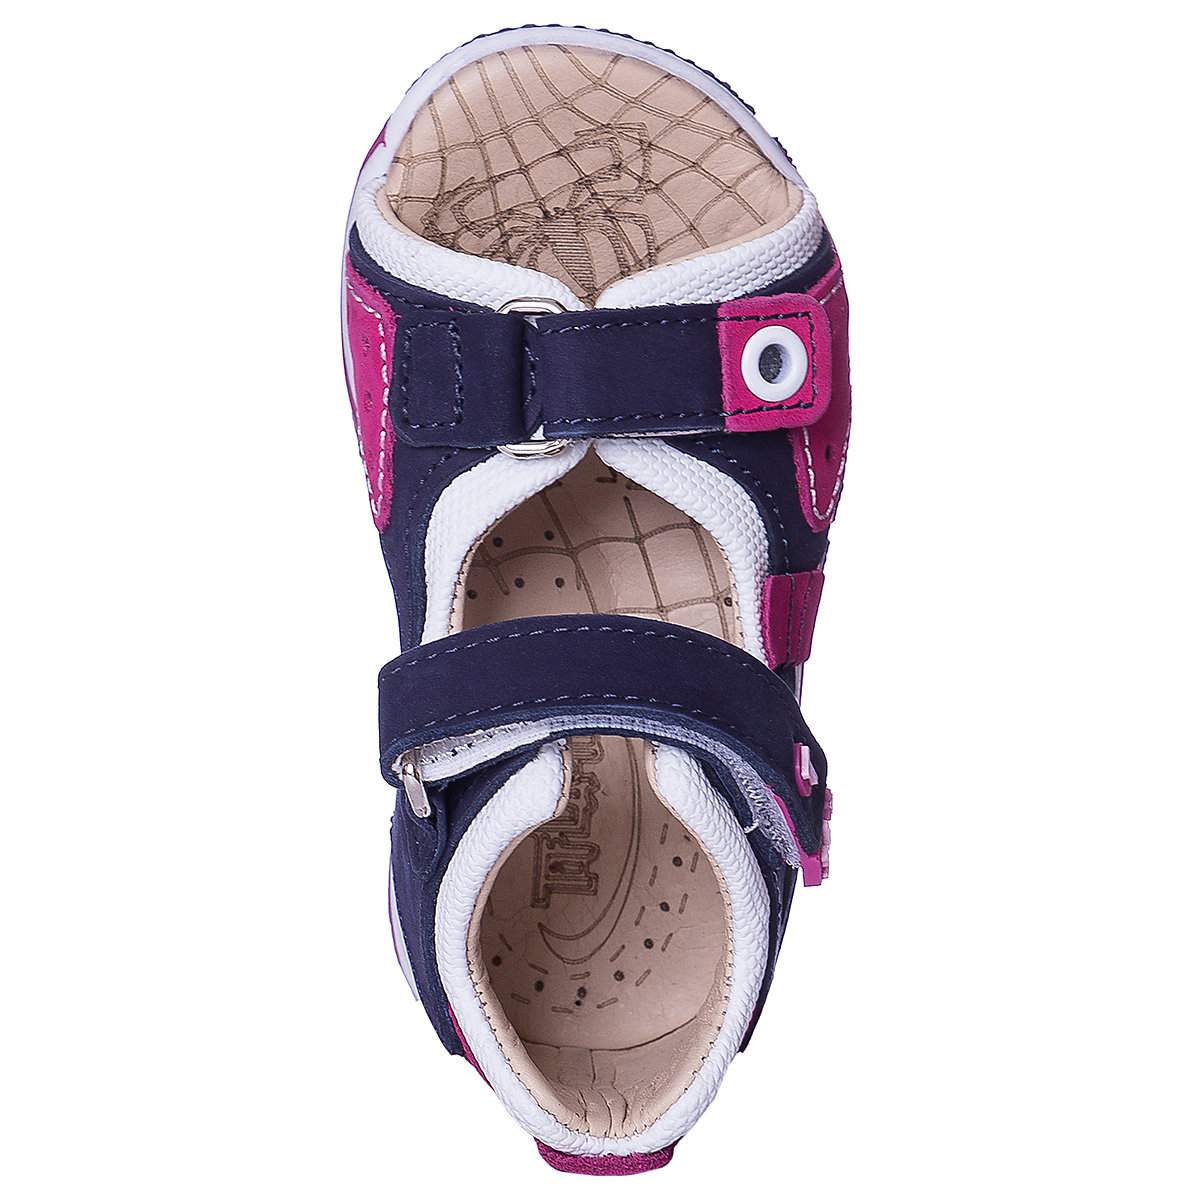 TIFLANI Sandals 10924950 children's shoes comfortable and light girls and boys sandals adidas s74649 sports and entertainment for boys